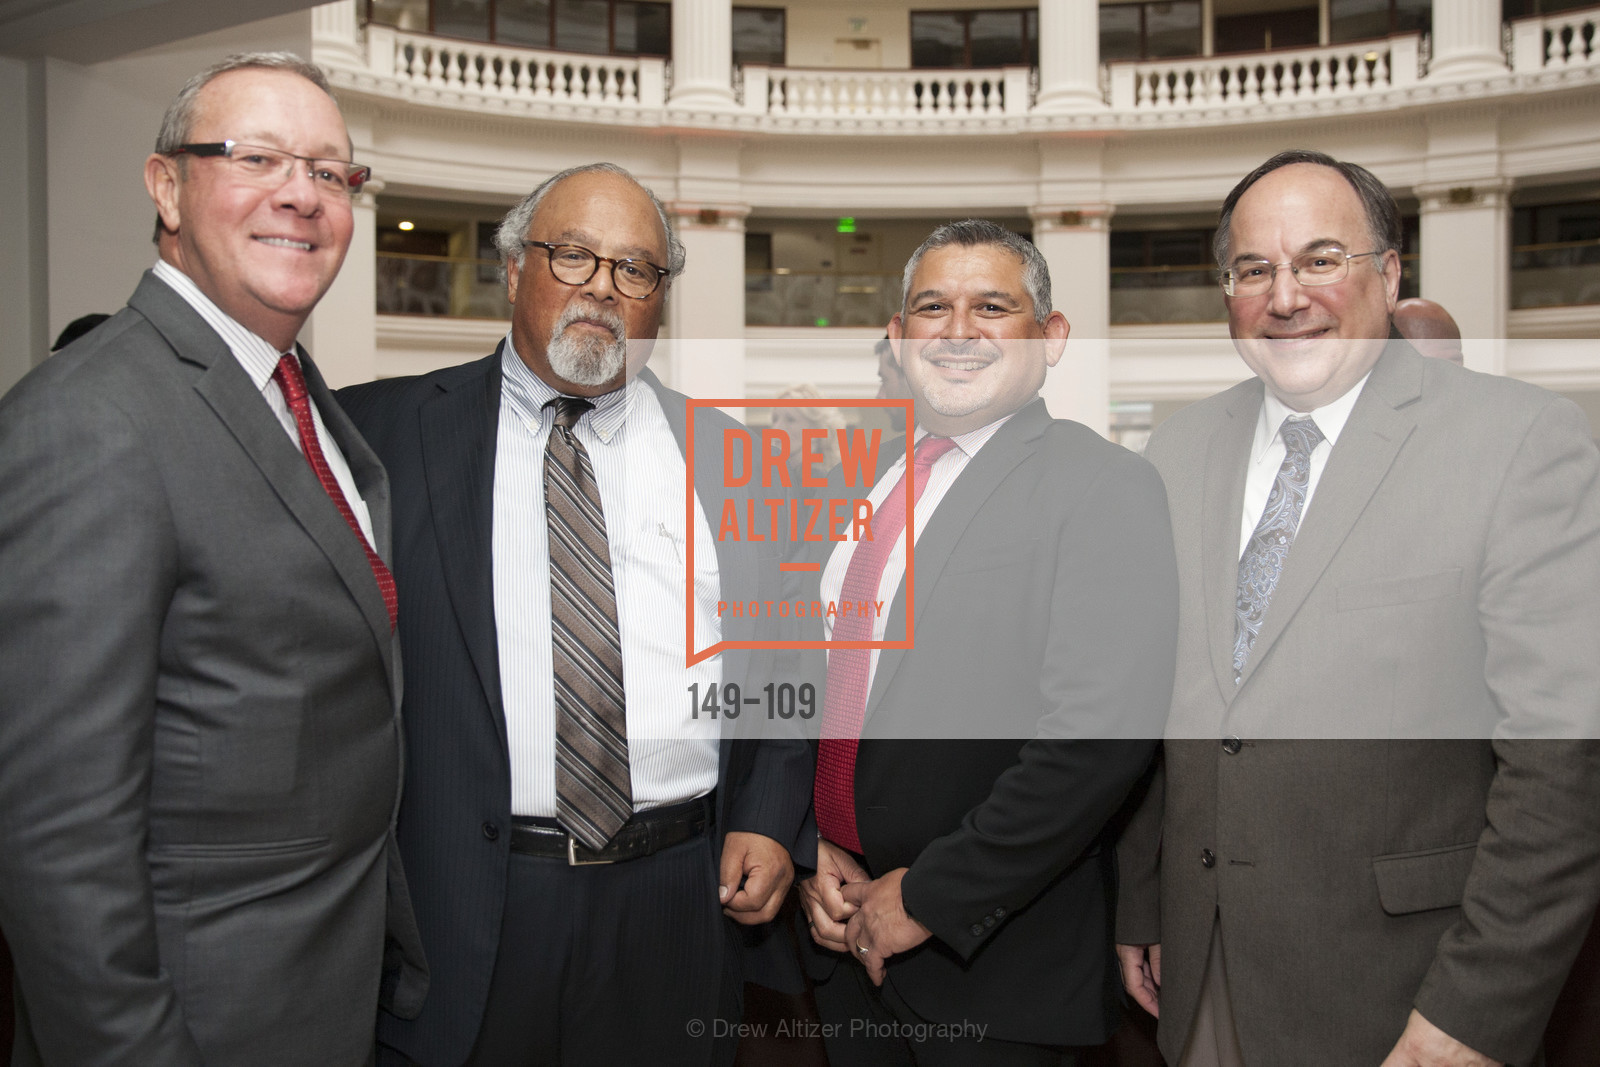 David McMurry, Eric Goosey, Ernesto Dela Torre, Jeff Sturthio, PANGAEA GLOBAL HEALTH Leadership Dinner at Rotunda in Oakland, The Rotunda. Oakland, May 11th, 2015,Drew Altizer, Drew Altizer Photography, full-service agency, private events, San Francisco photographer, photographer california